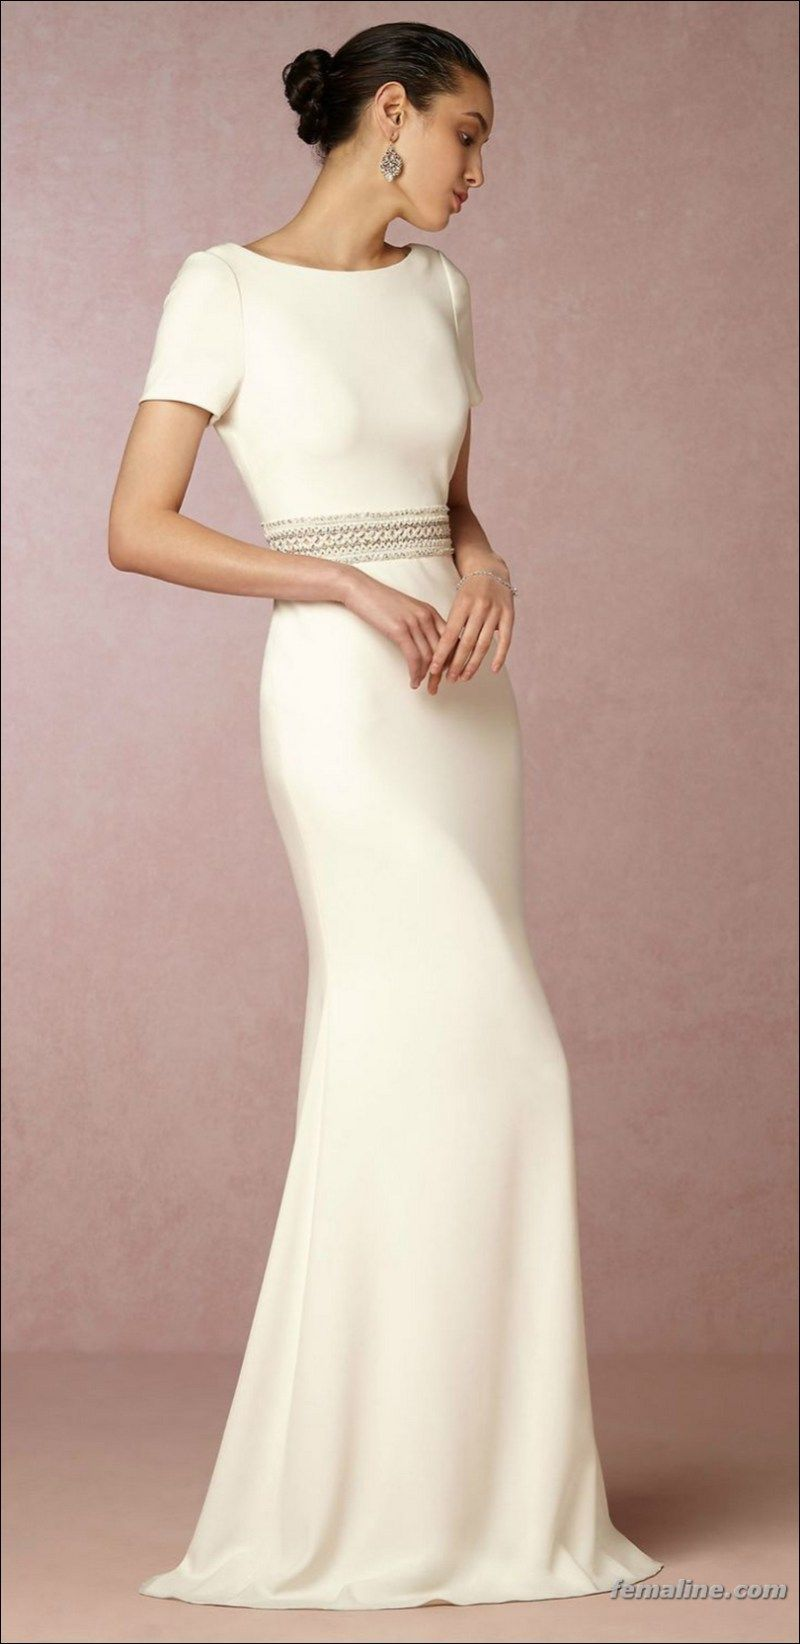 Wedding dress short in front with long train   Short Sleeve Wedding Dress Trend   Gowns with Short or Cap